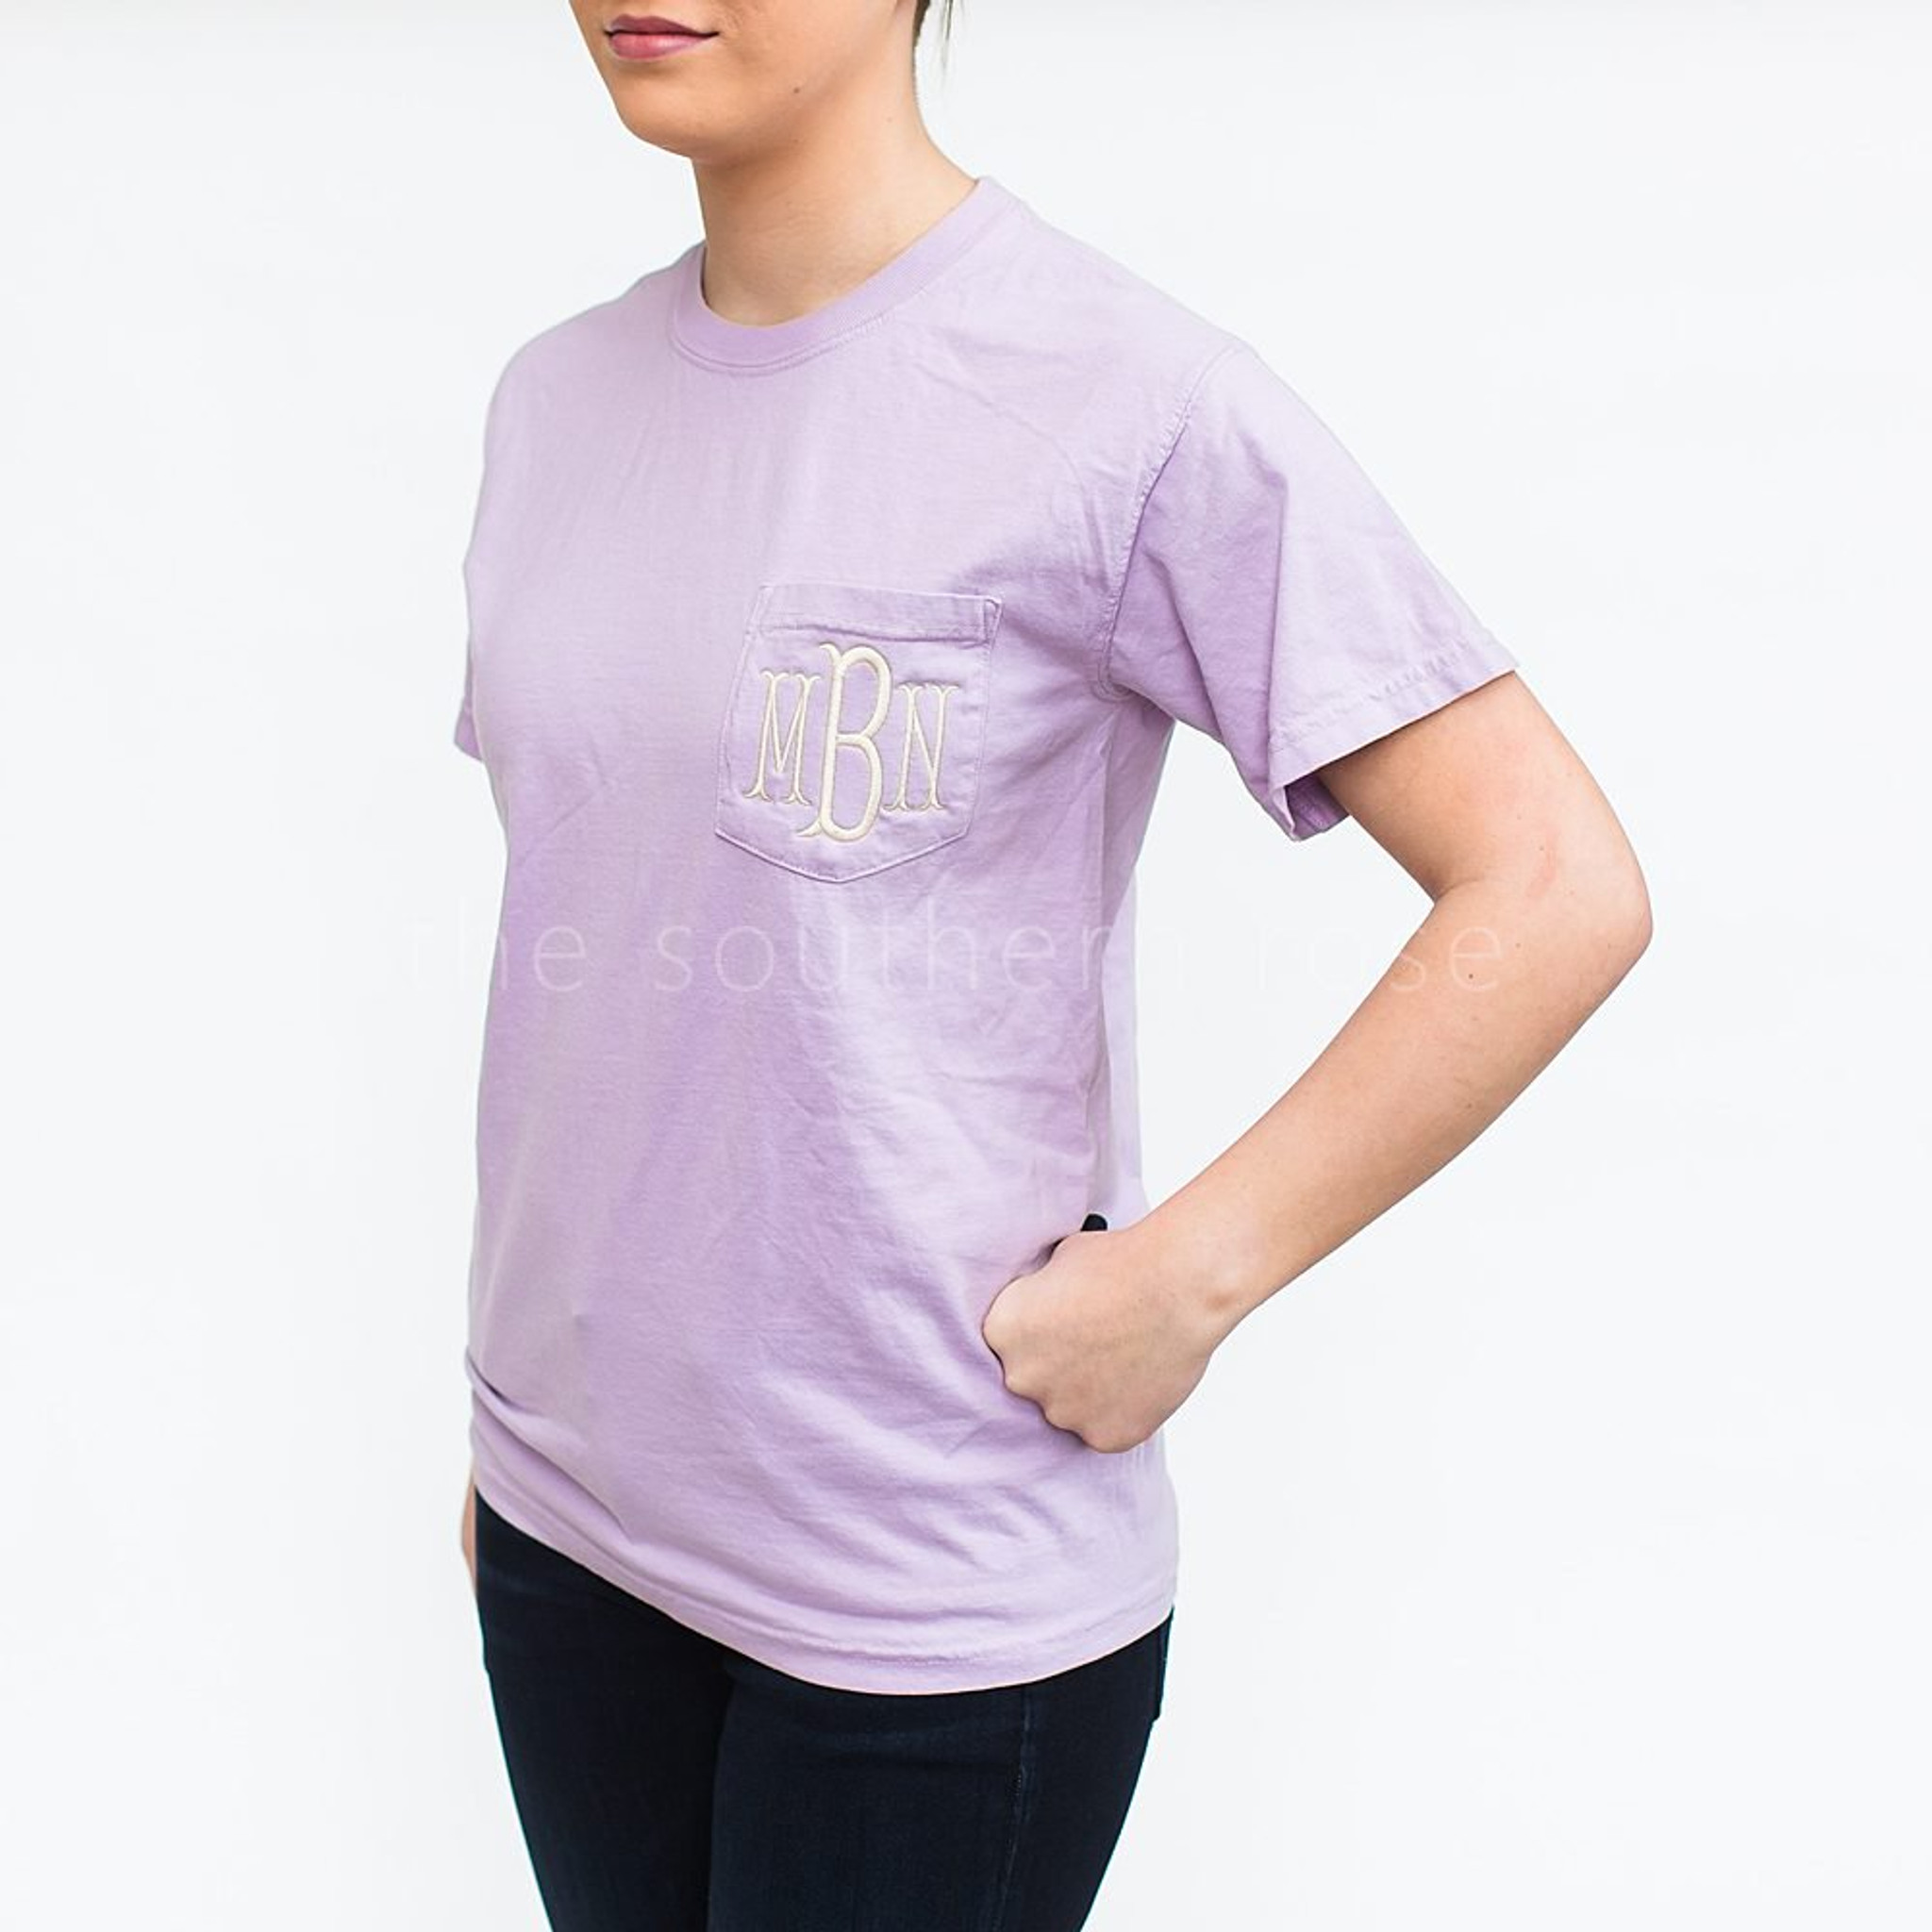 A pale purple tee shirt with monogrammed letters on the chest pocket.